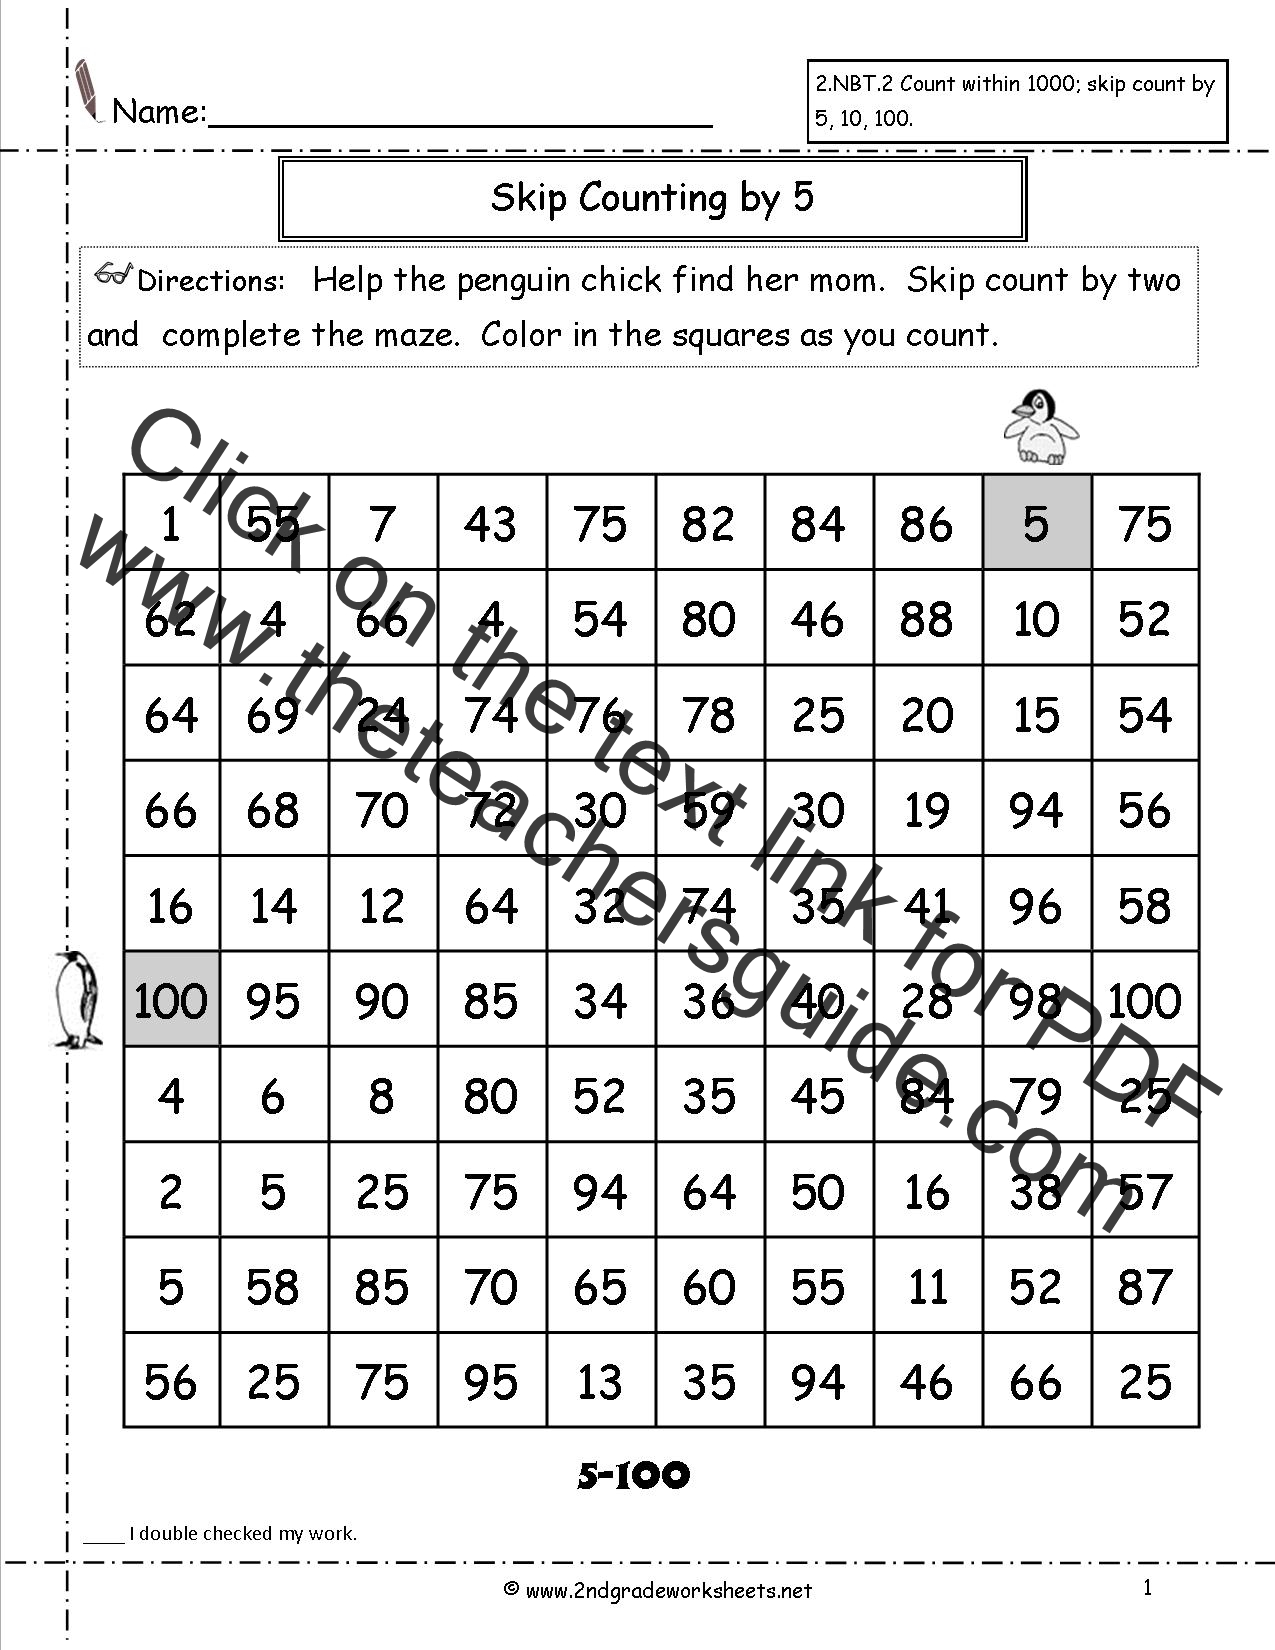 Worksheets Free Skip Counting Worksheets free skip counting worksheets by 5 maze